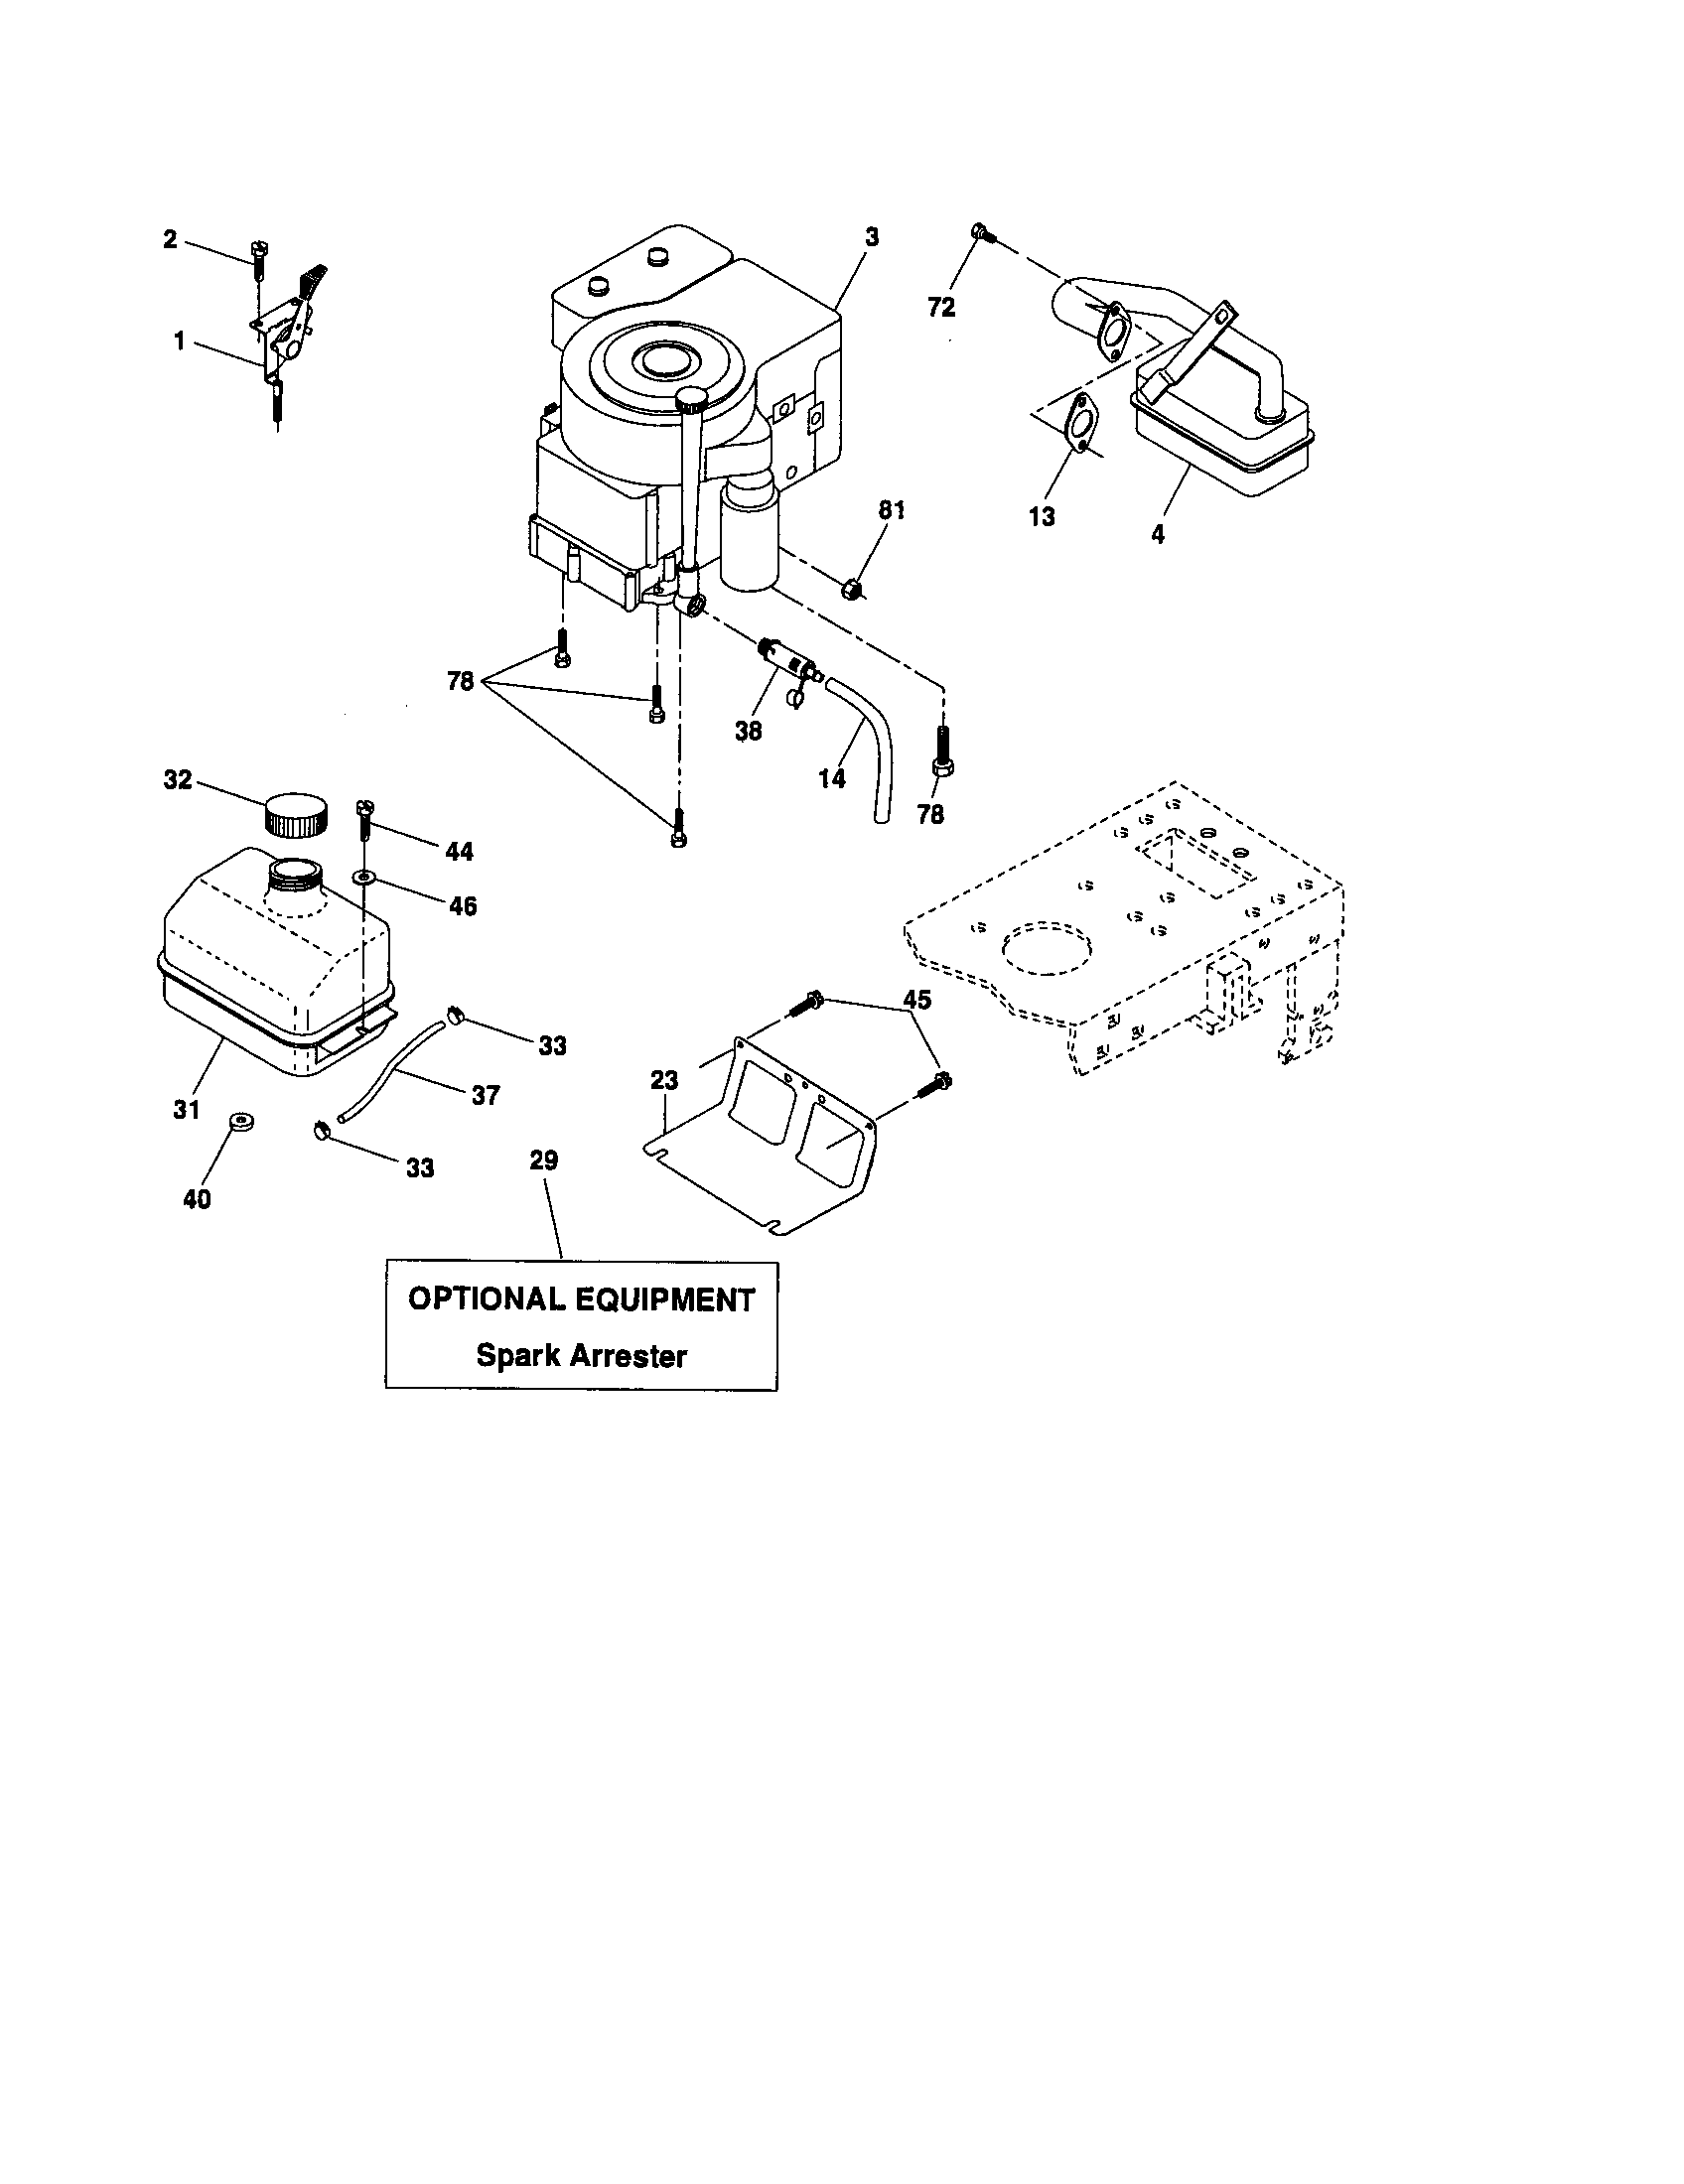 Craftsman model 917276393 lawn, tractor genuine parts